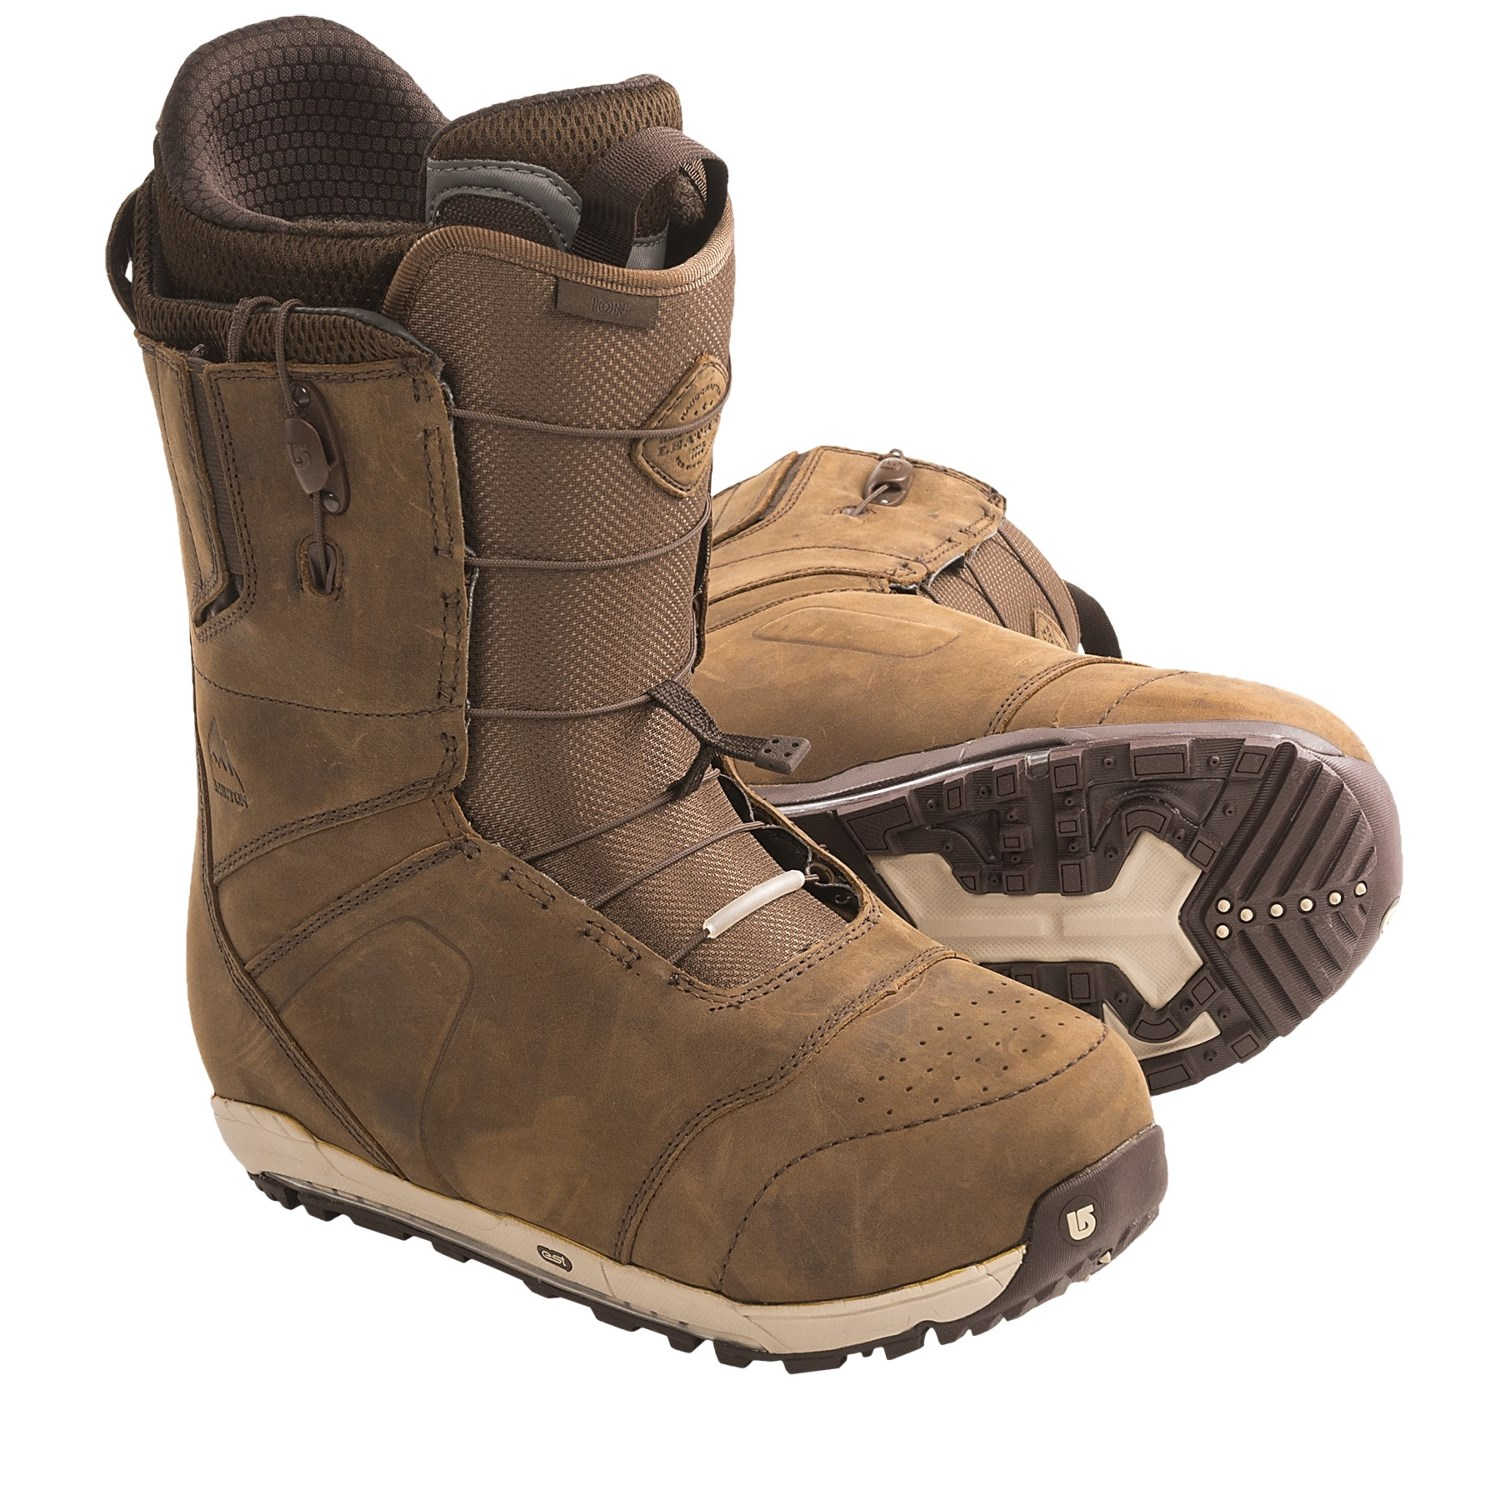 Burton Ion Leather Snowboard Boots (For Men) 7072D